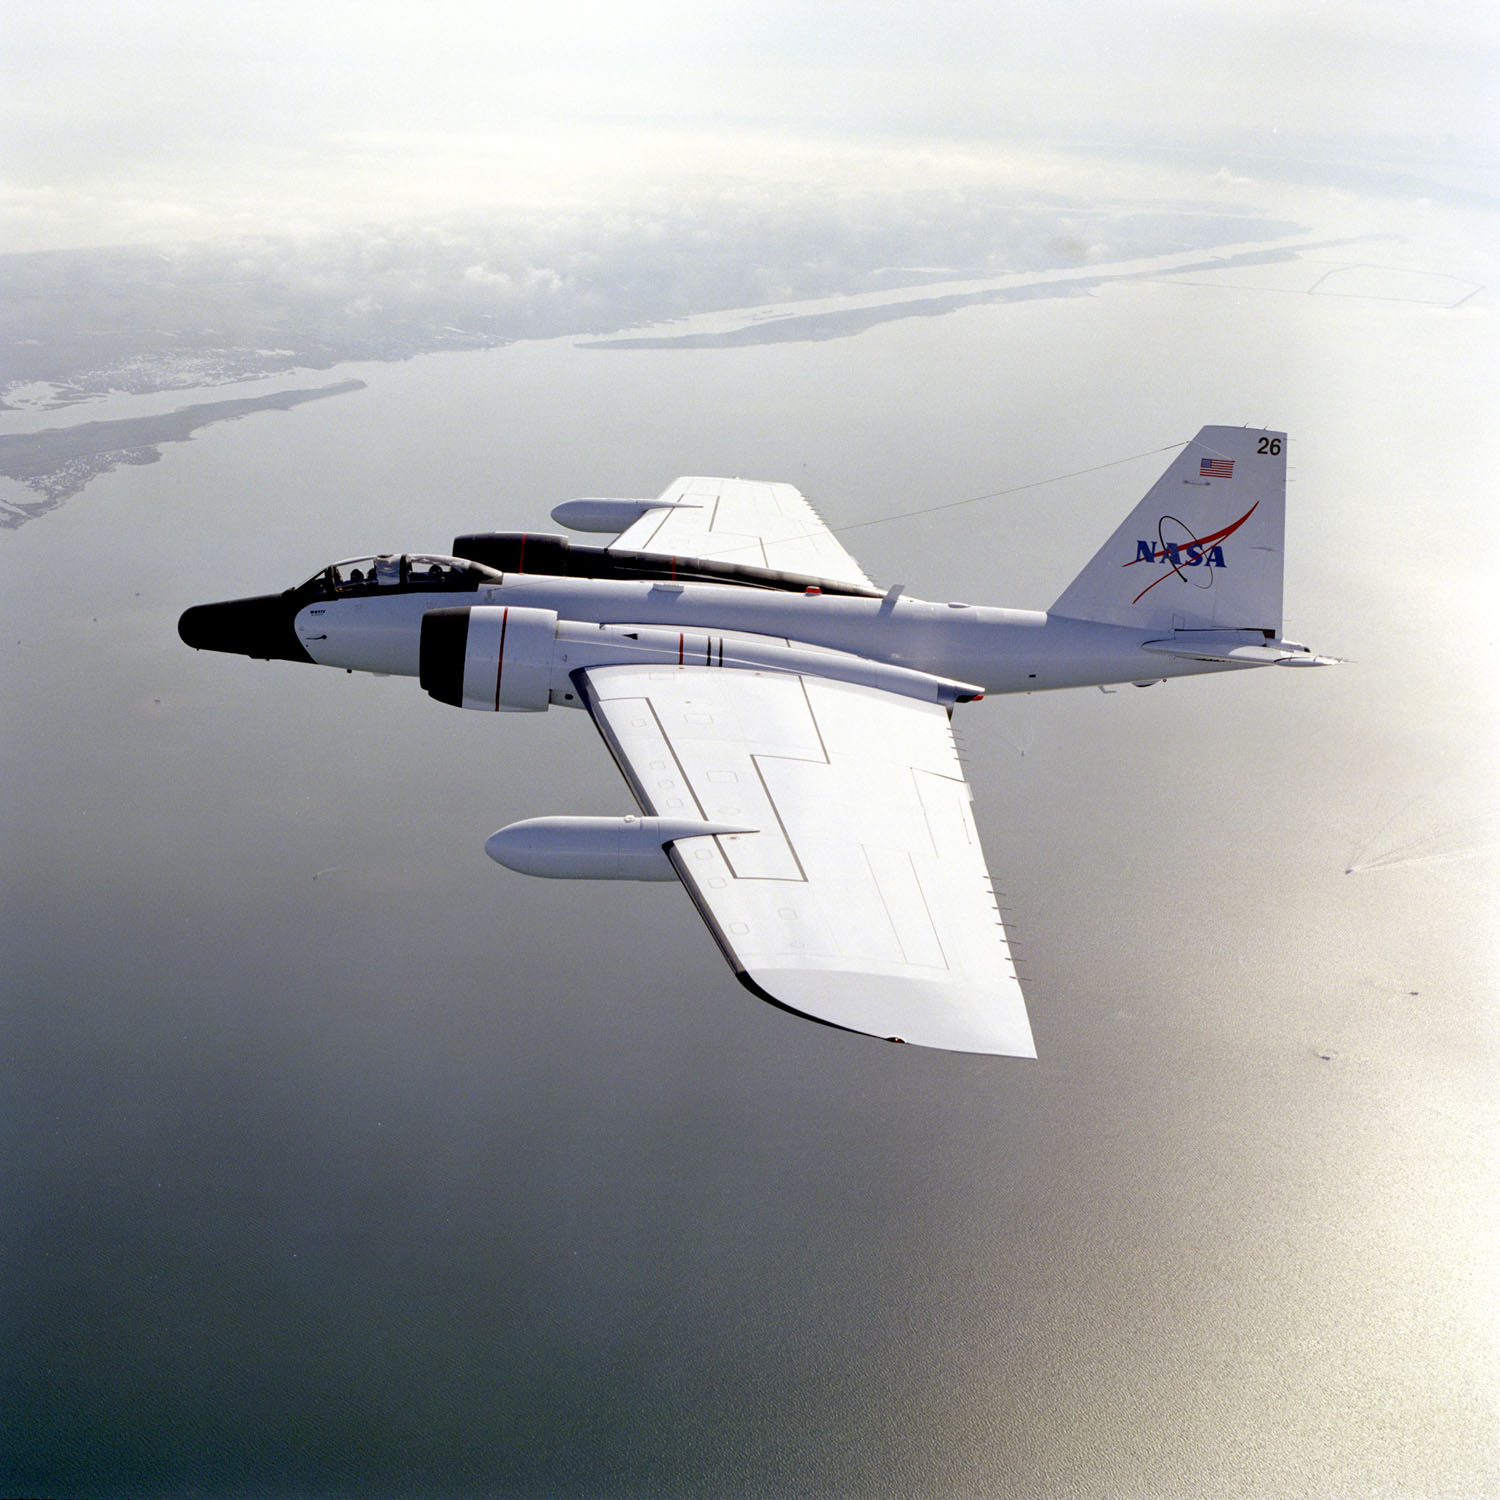 NASA's HS3 Mission Continues With Flights Over Hurricane ...